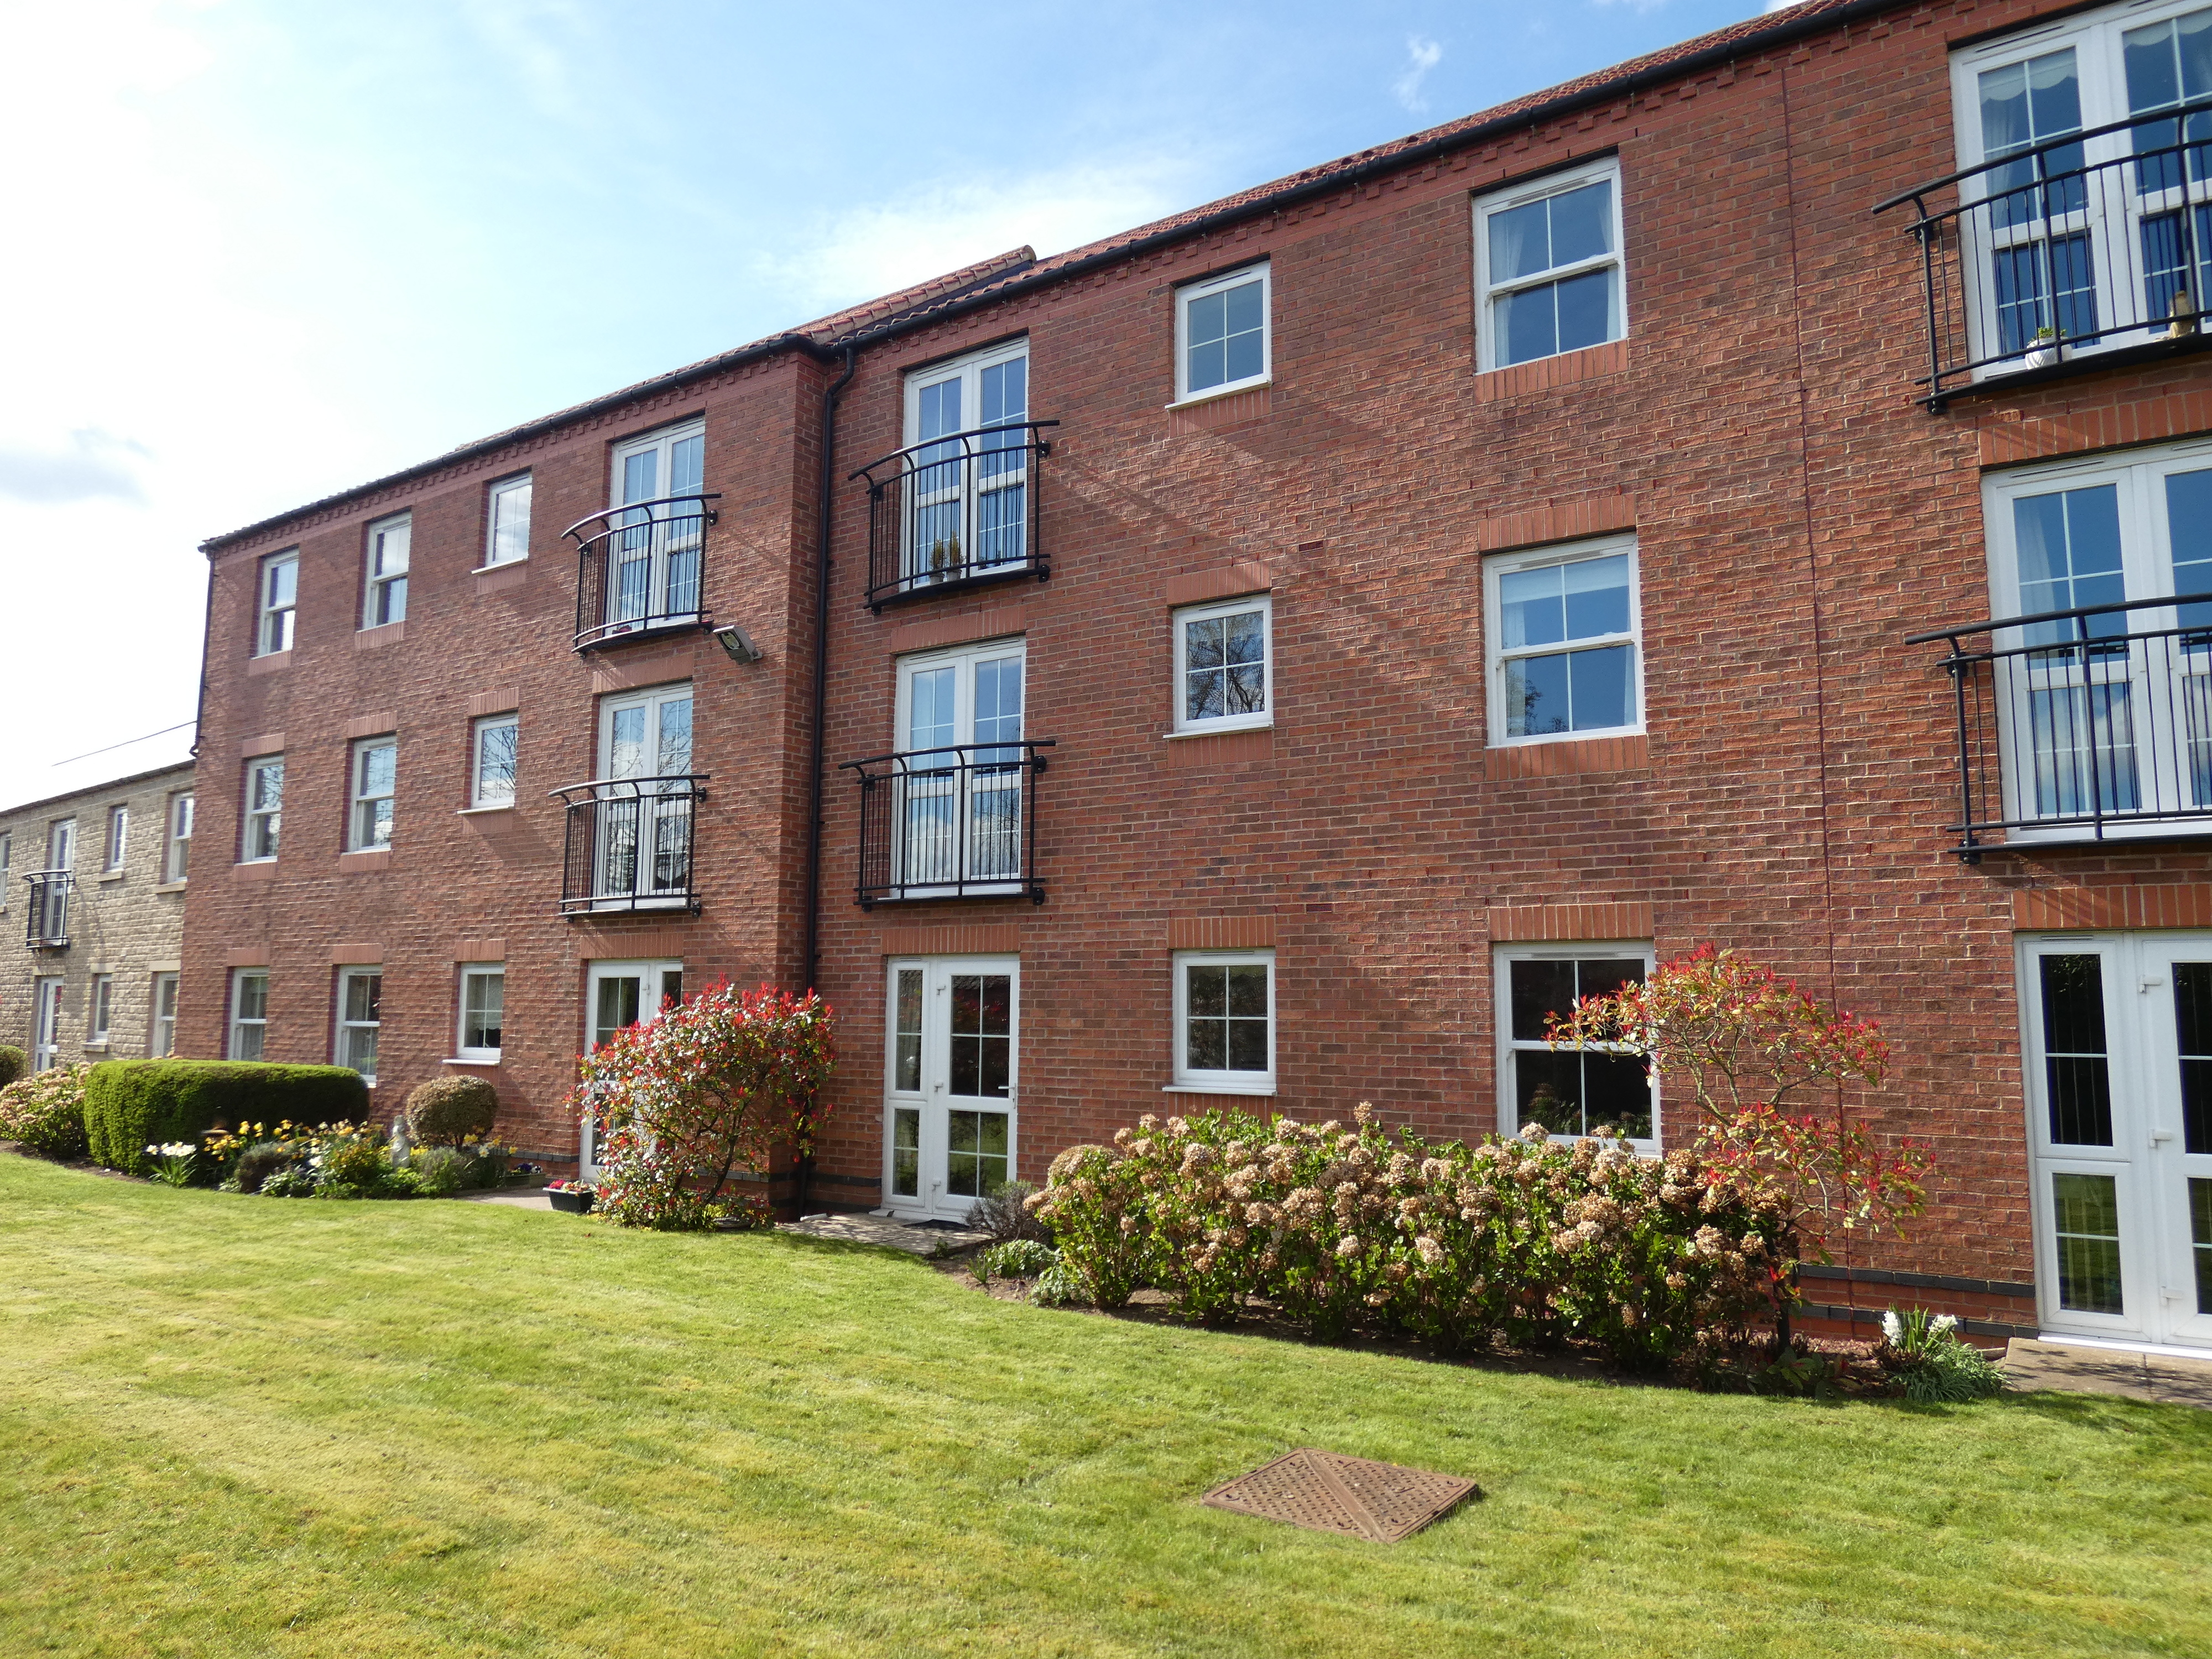 31 Greendale Court, Bedale